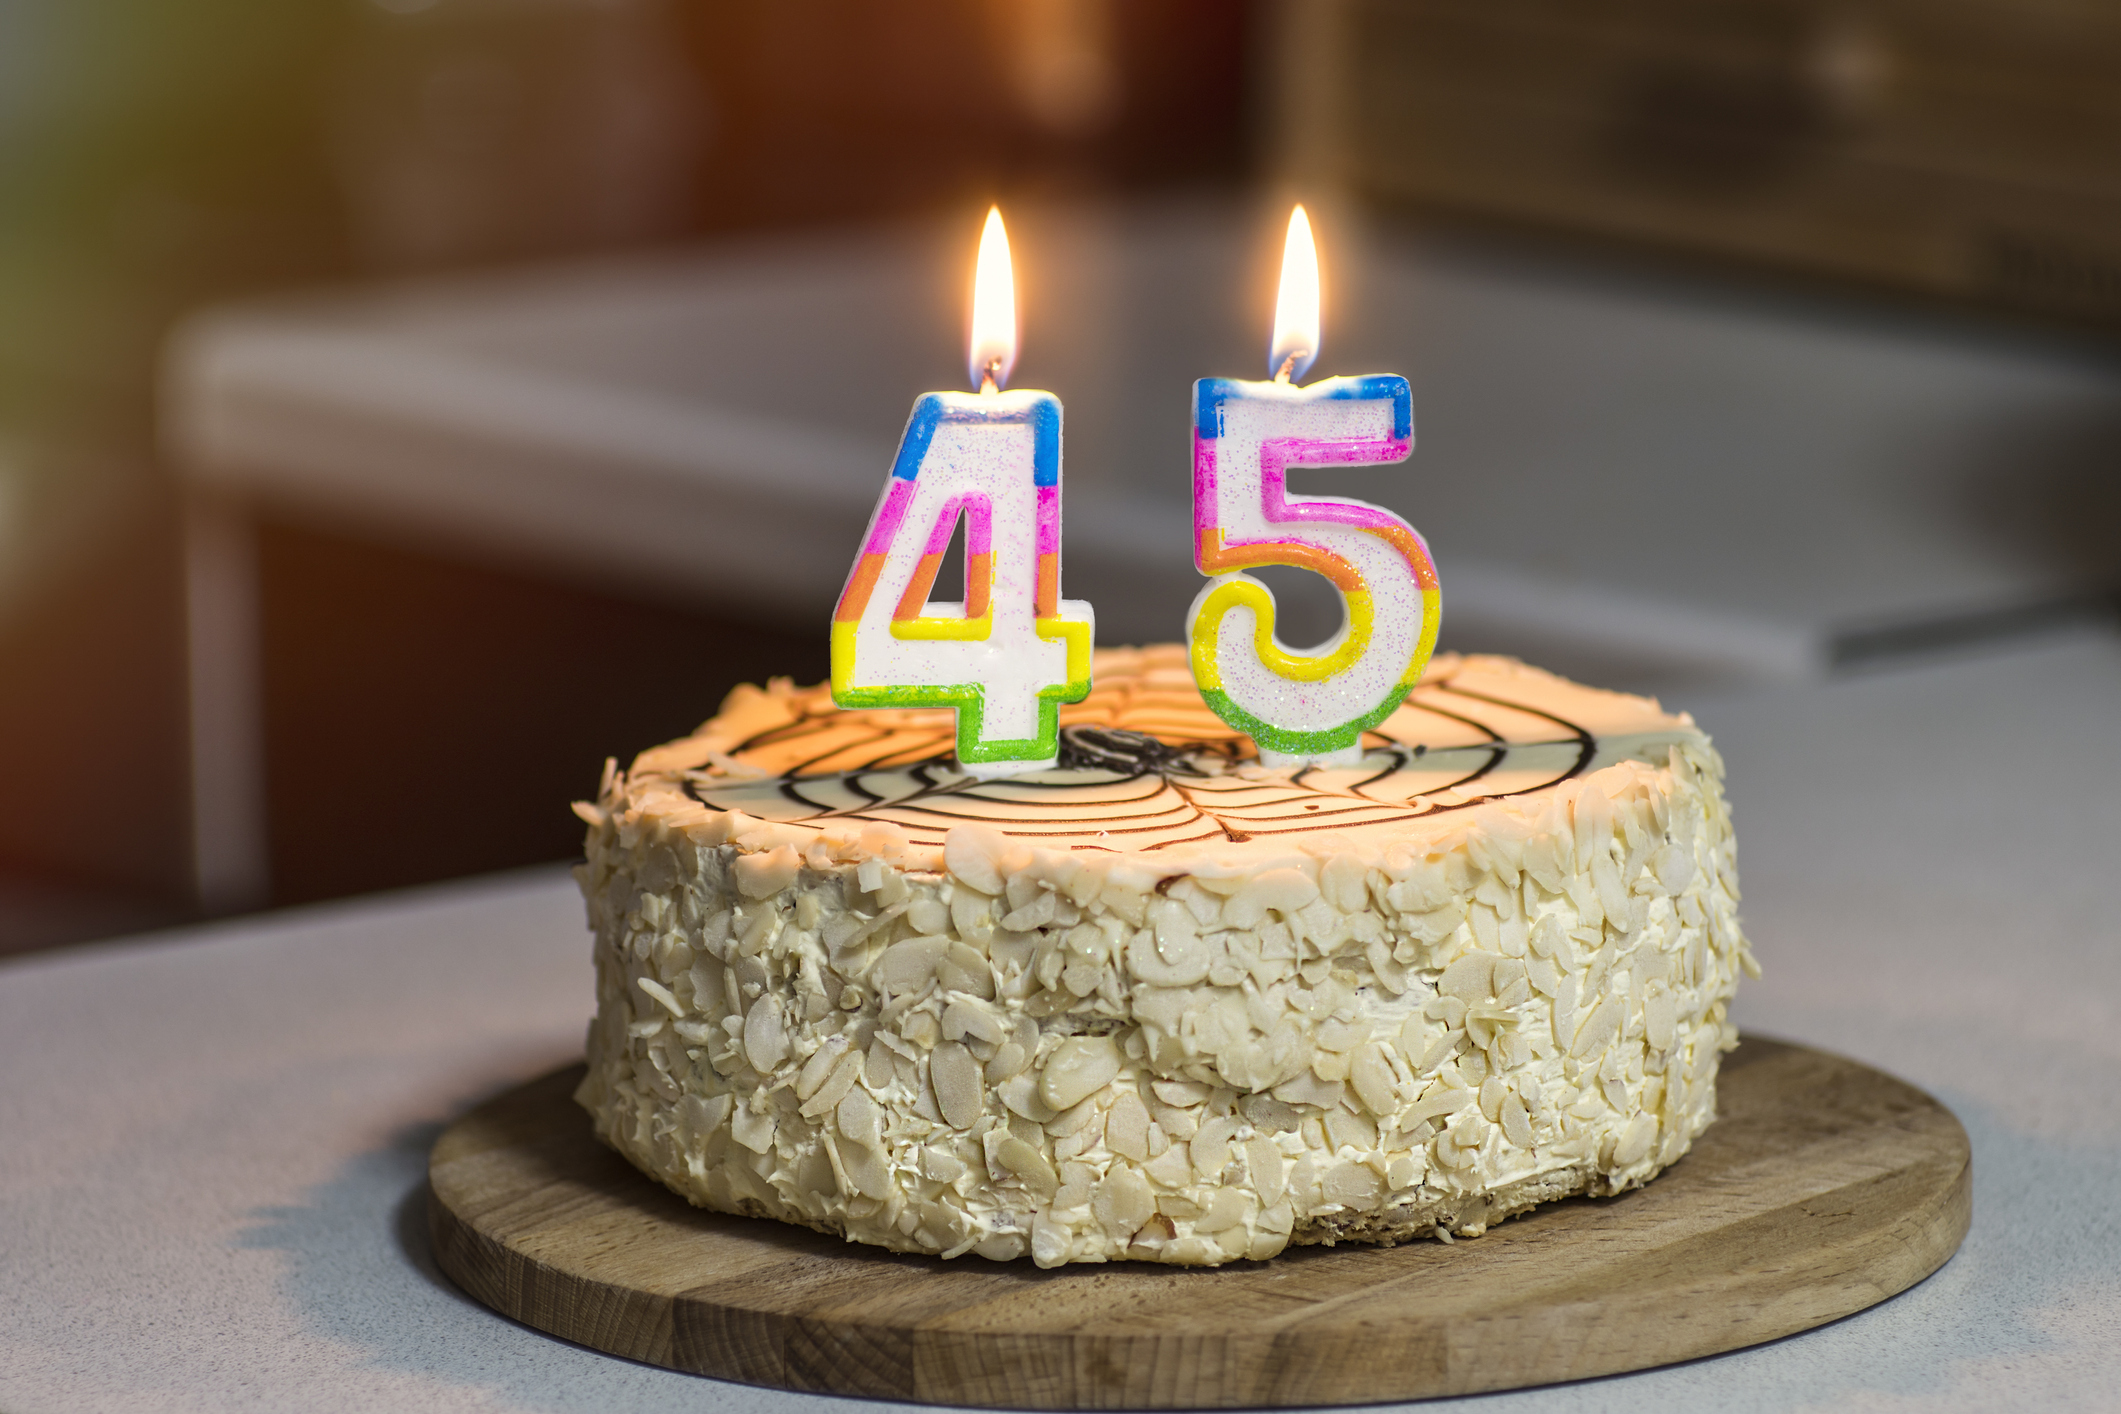 Birthday cake. Candles burn in the form of numbers 45.